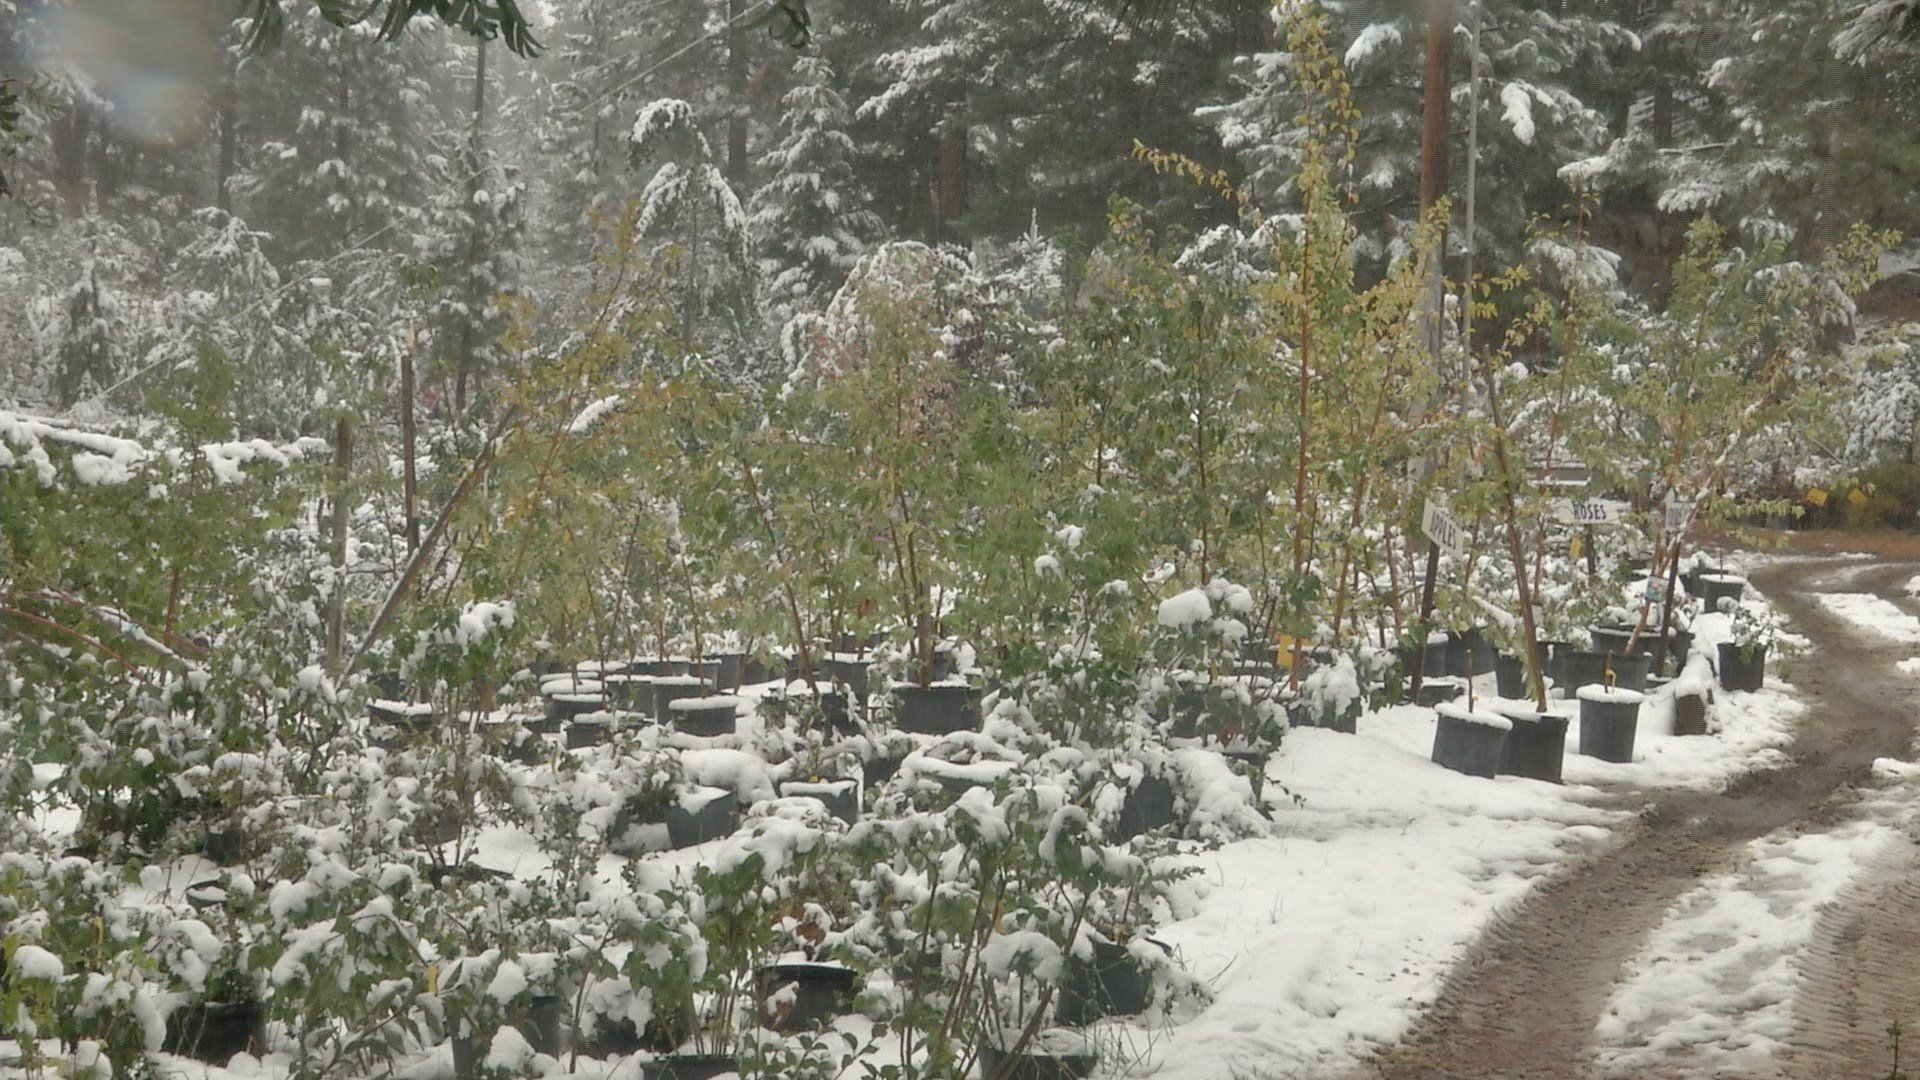 Greg Chadwick, owner of Chadwick Nursery, says it's time for local gardeners to start getting ready for fall.(MTN News photo)